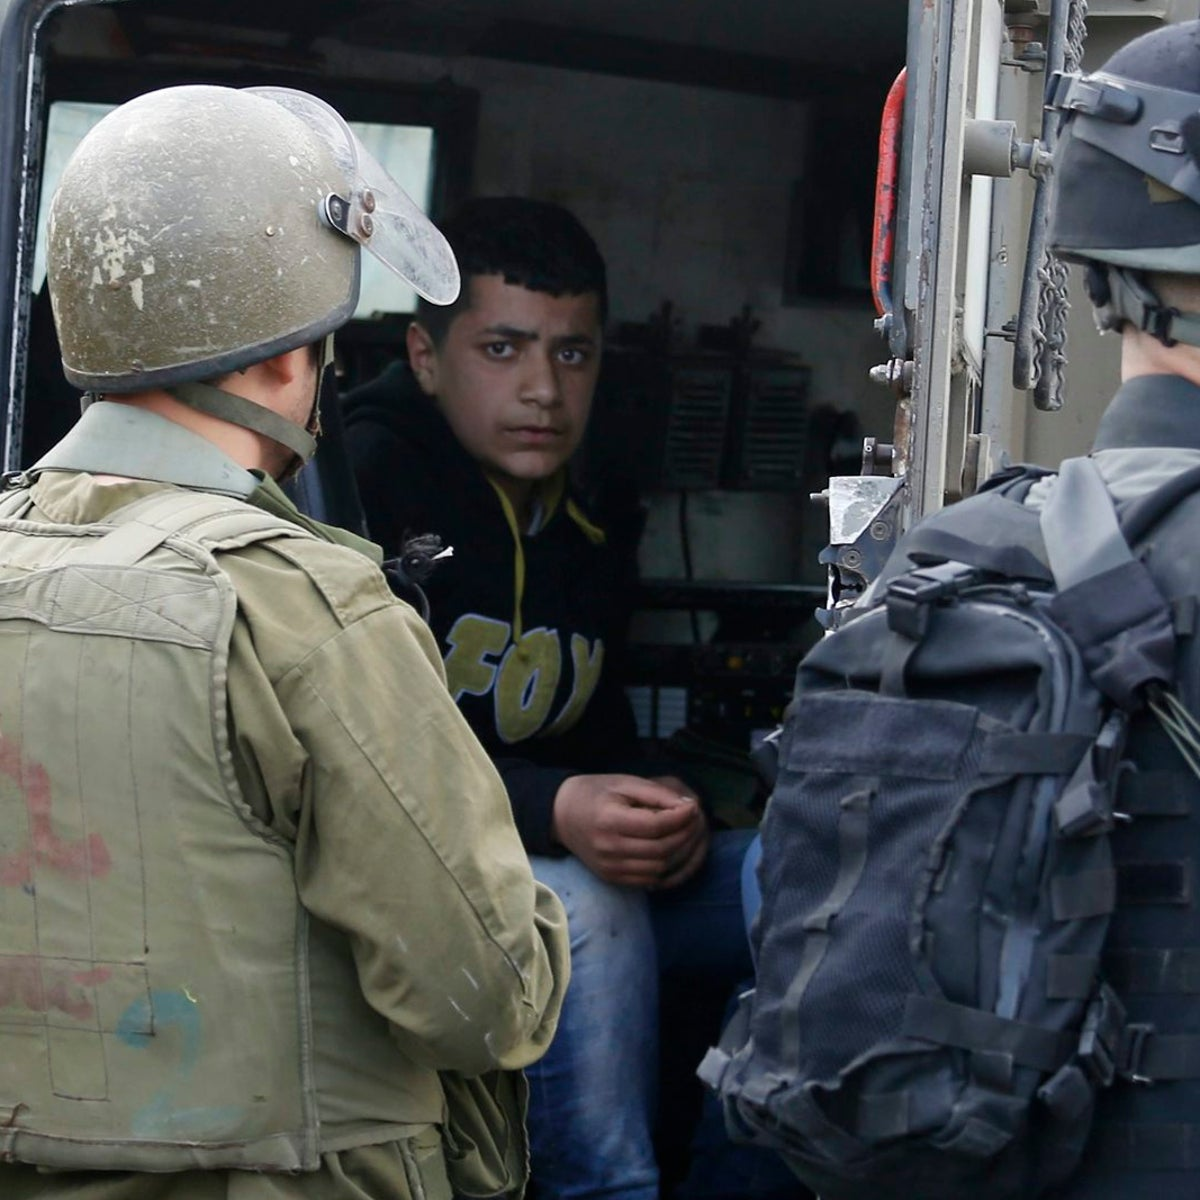 Israeli border police arrest a young Palestinian during clashes following a protest over a Palestinian militant Basil al-Araj, killed by Israeli forces early Monday, in front of the Israeli Ofer prison, near the West Bank city of Ramallah,, Tuesday, March 7, 2017.